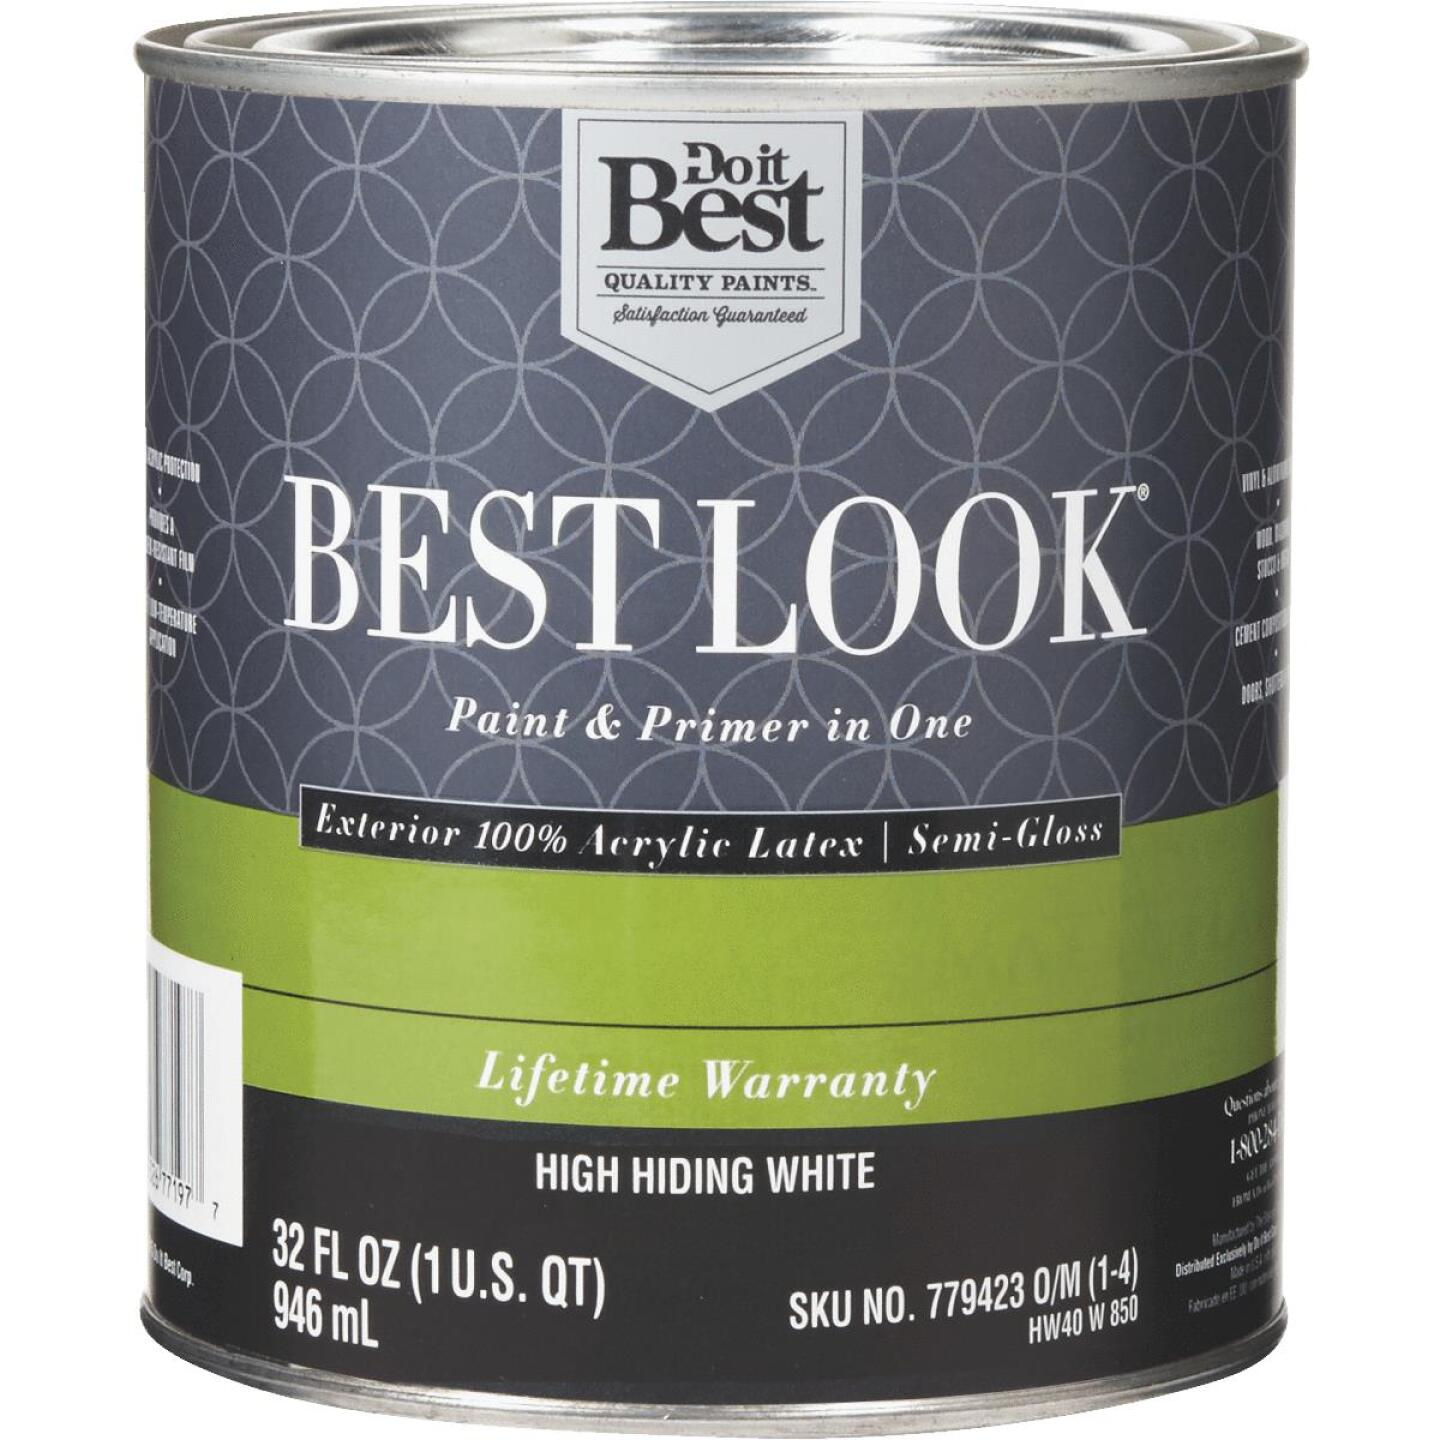 Best Look 100% Acrylic Latex Paint & Primer In One Semi-Gloss Exterior House Paint, High Hiding White, 1 Qt. Image 1